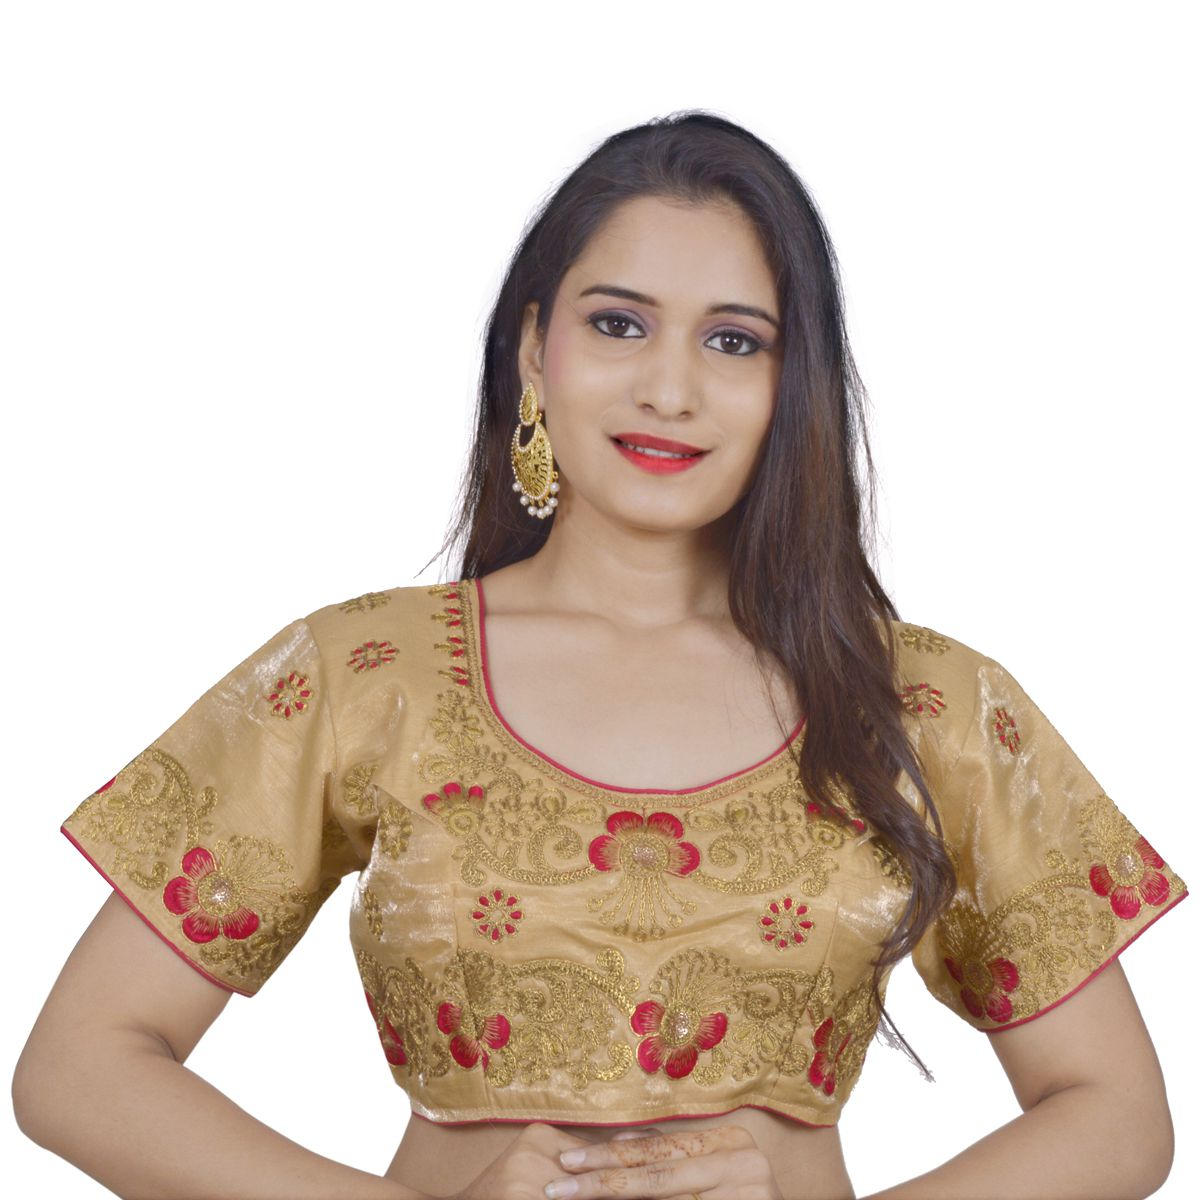 NAMI Beige Cotton Readymade with Pad Blouse